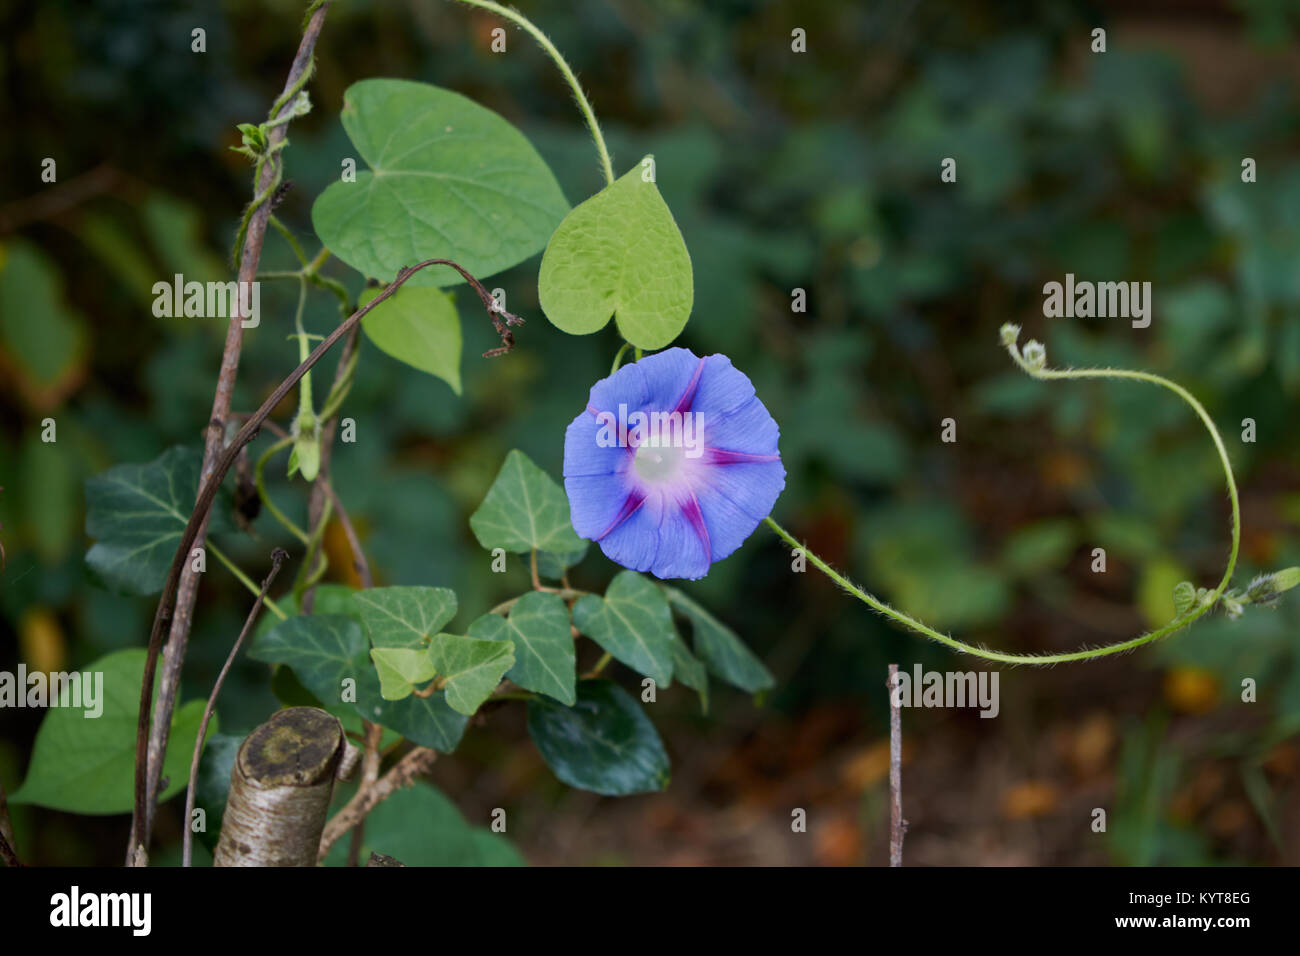 Single morning glory growing up a branch - Stock Image